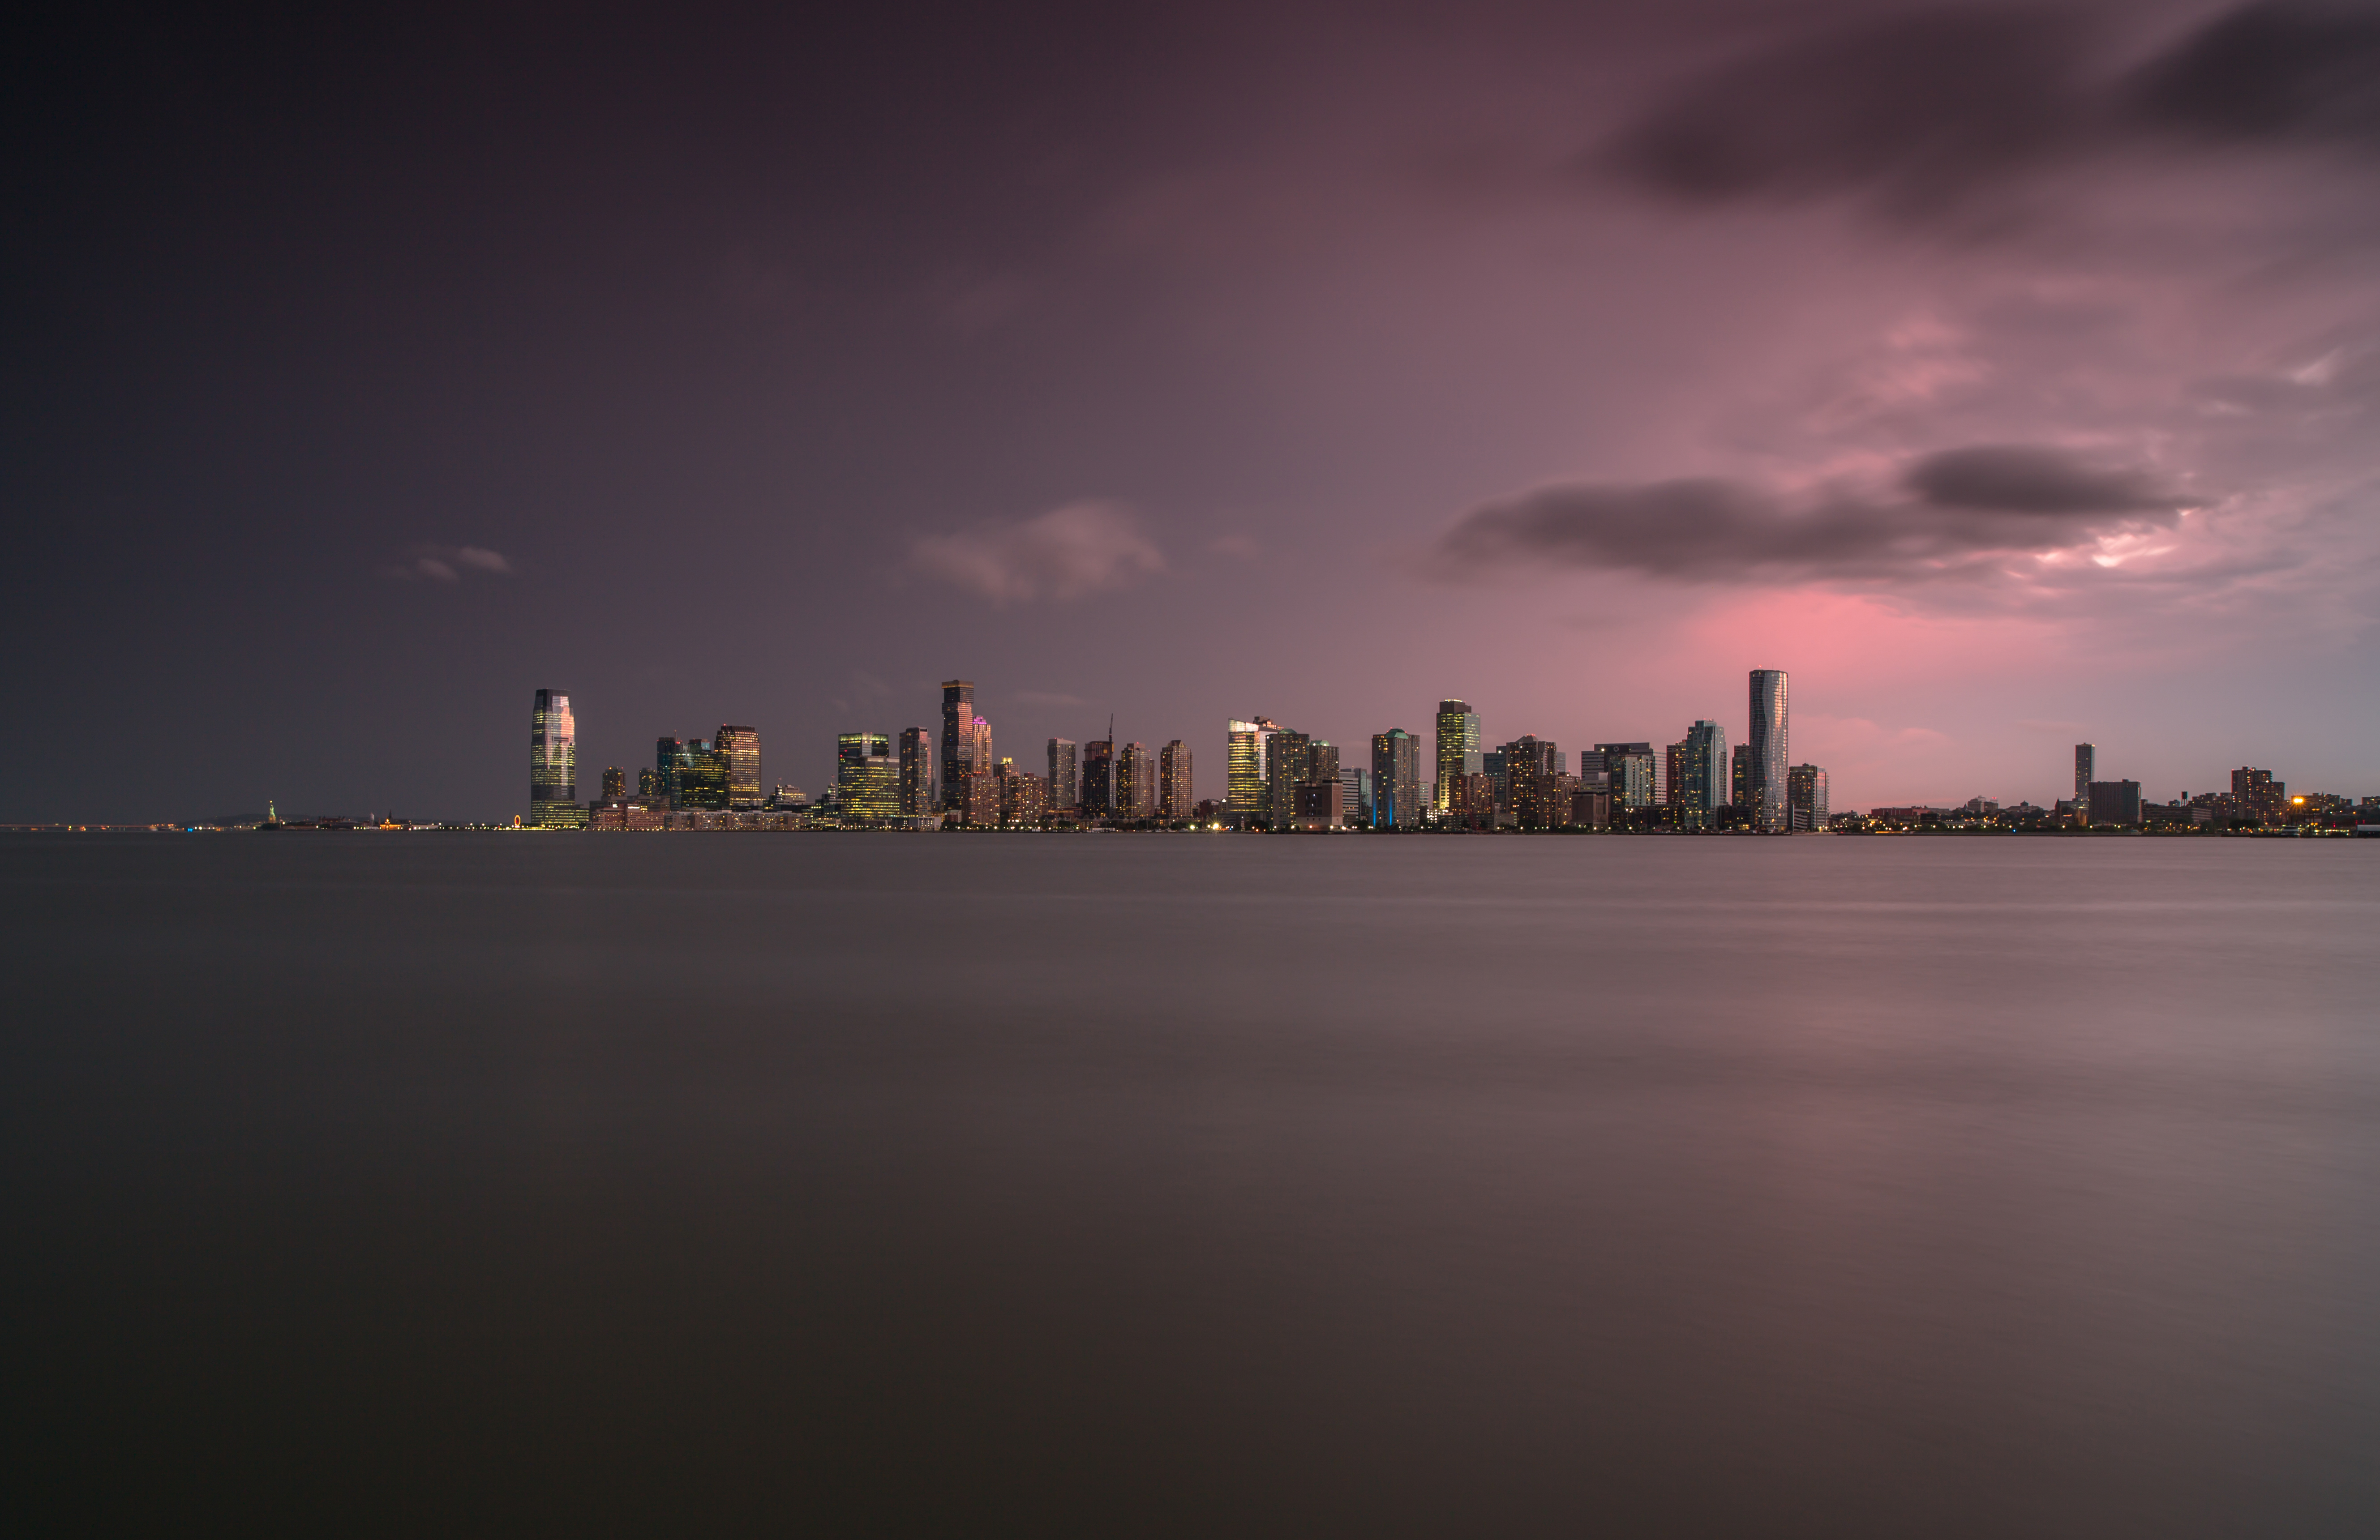 Jersey city view during sunset on a stormy day example image 1